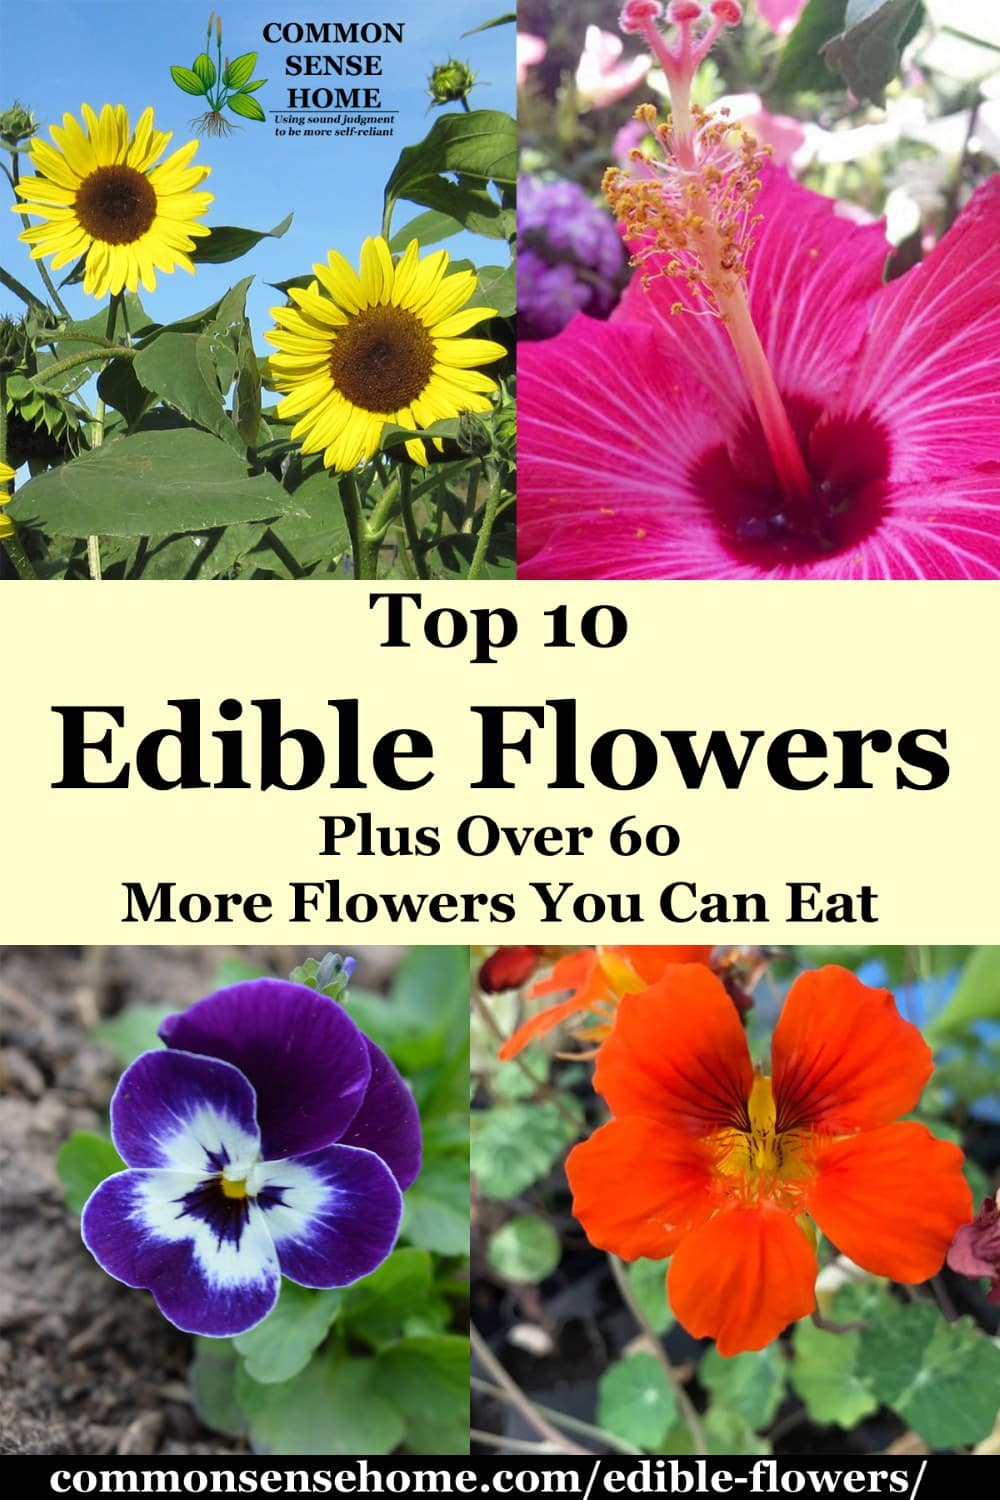 edible flowers list and pictures - sunflowers (top left), hibiscus (top right), pansy (bottom left), nasturtium (bottom right)